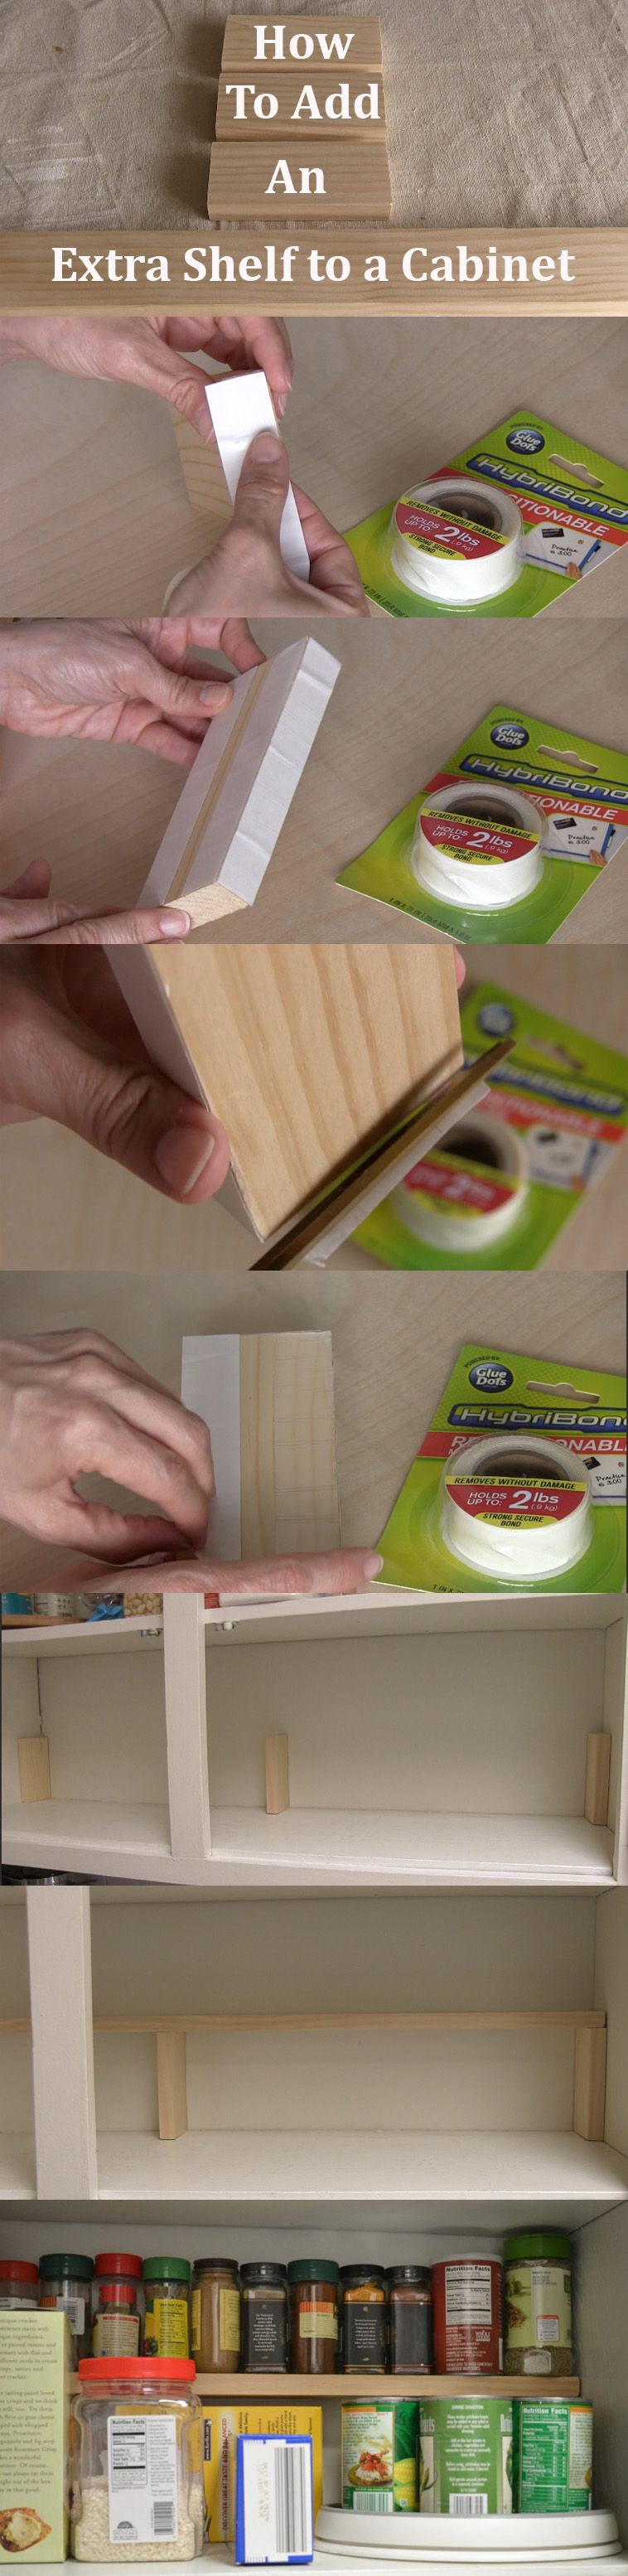 Don T Let That Vertical Space In Your Cabinet Go To Waste Isabelle Larue Shows You How To Quickly Add An Extra Shelf In A Cabinet Thi For The Home Diy